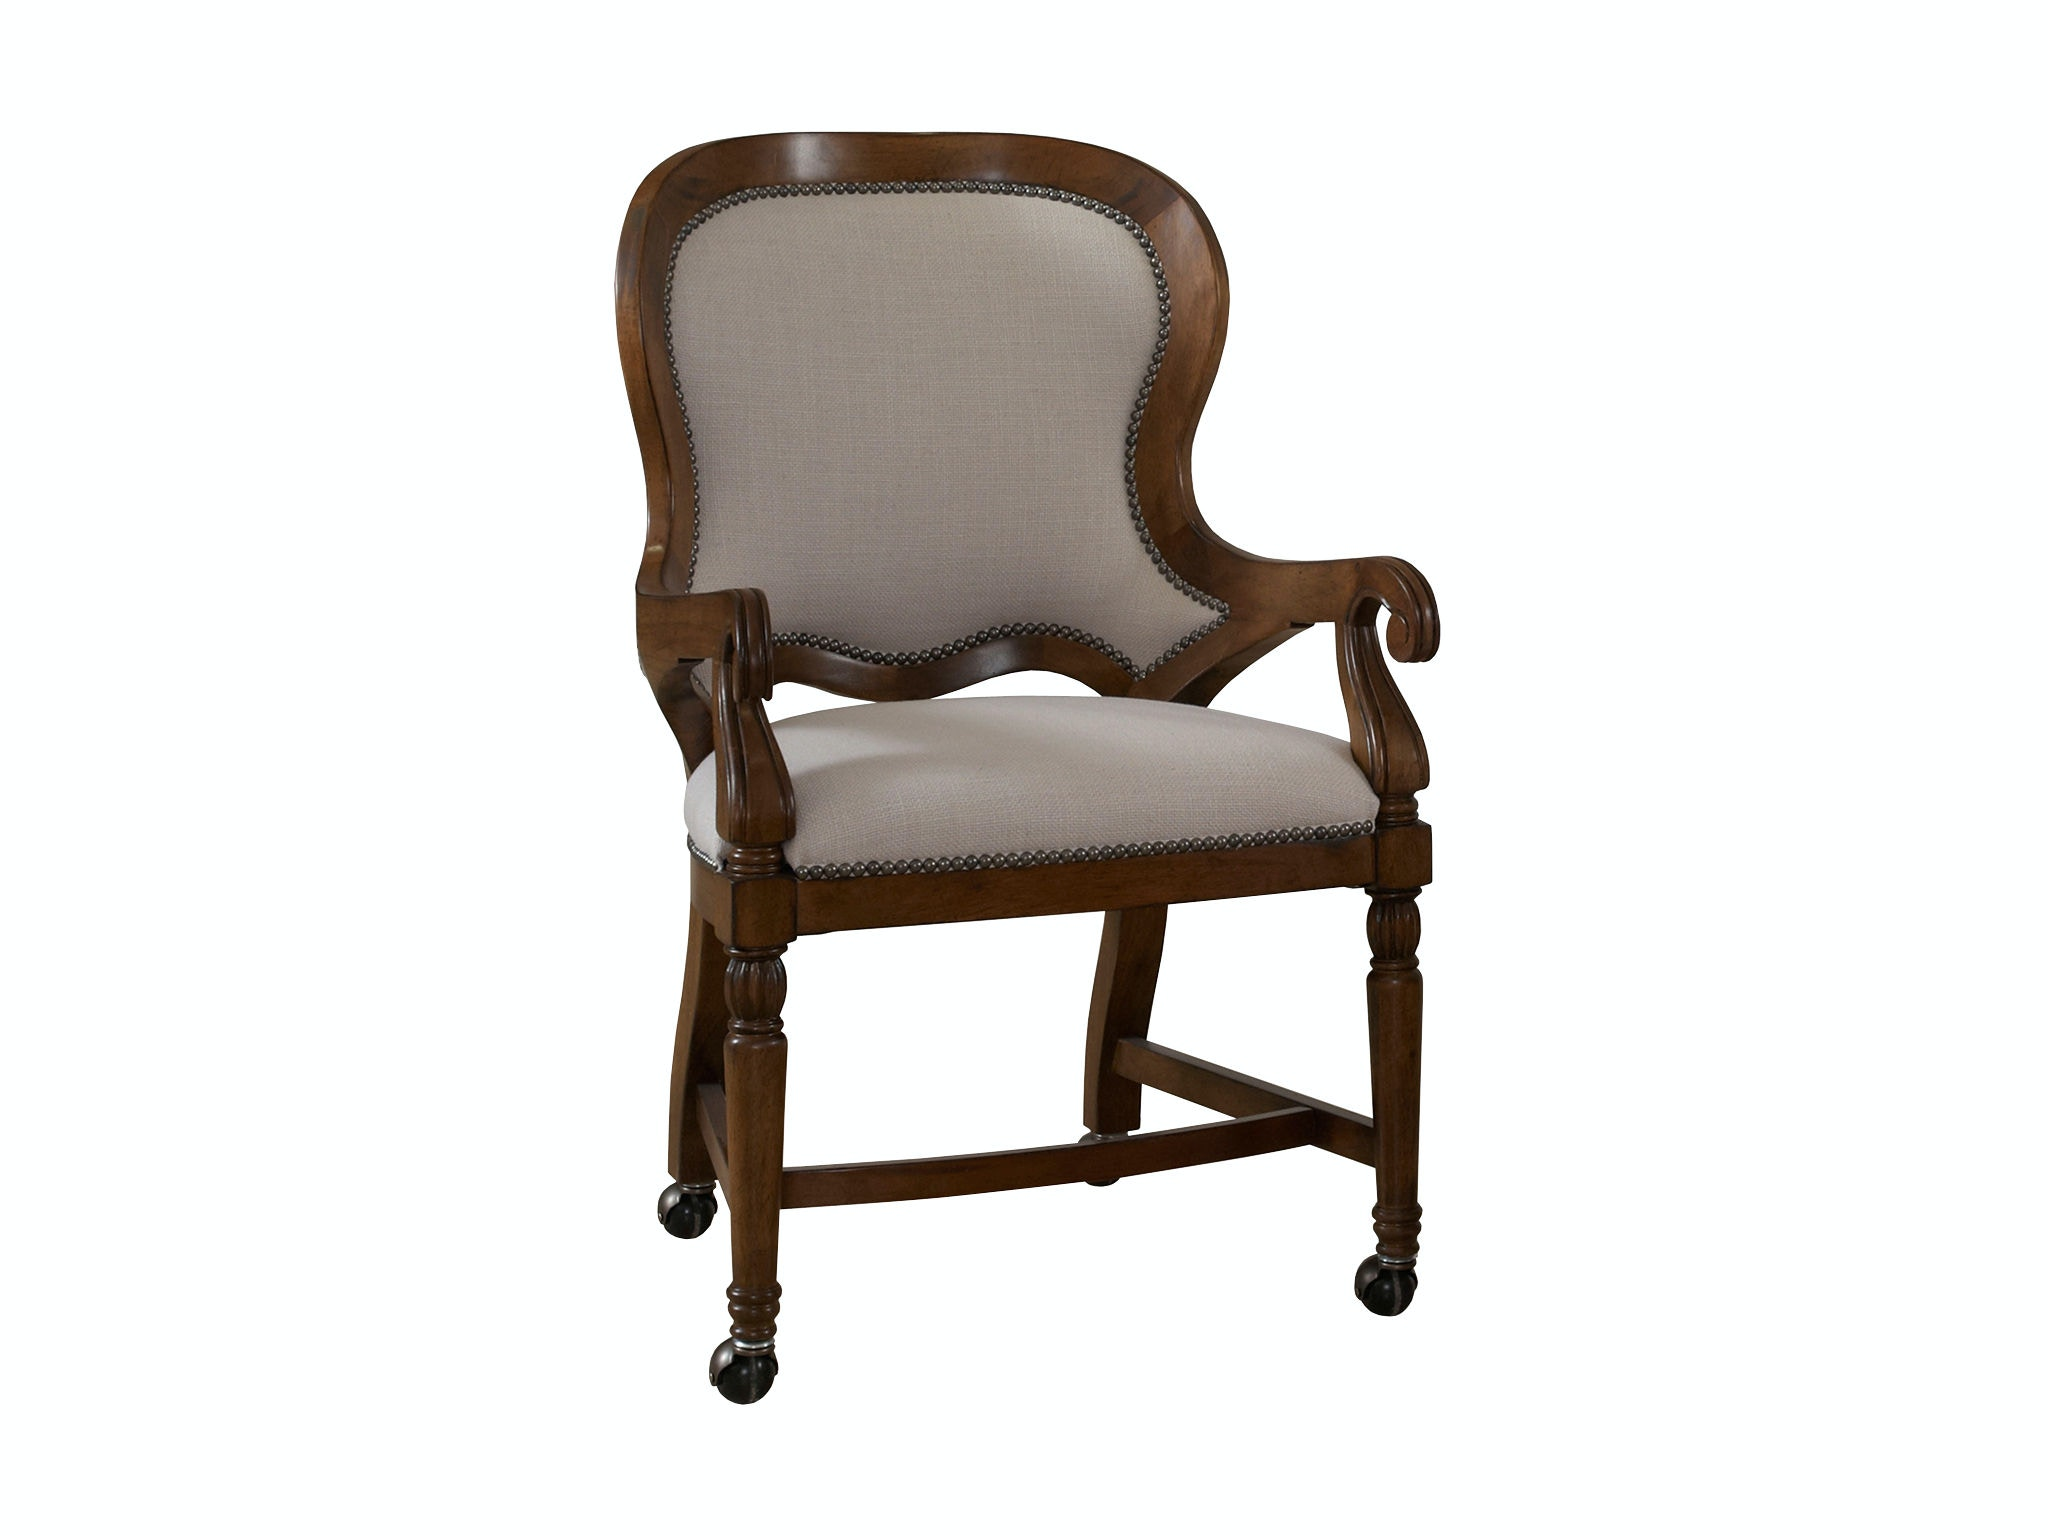 ... Best Furniture Stores In High Point Nc; Contemporary Furniture High  Point Nc By Drexel Heritage Dining Room Gamekeeper Party Chair 587 779 ...